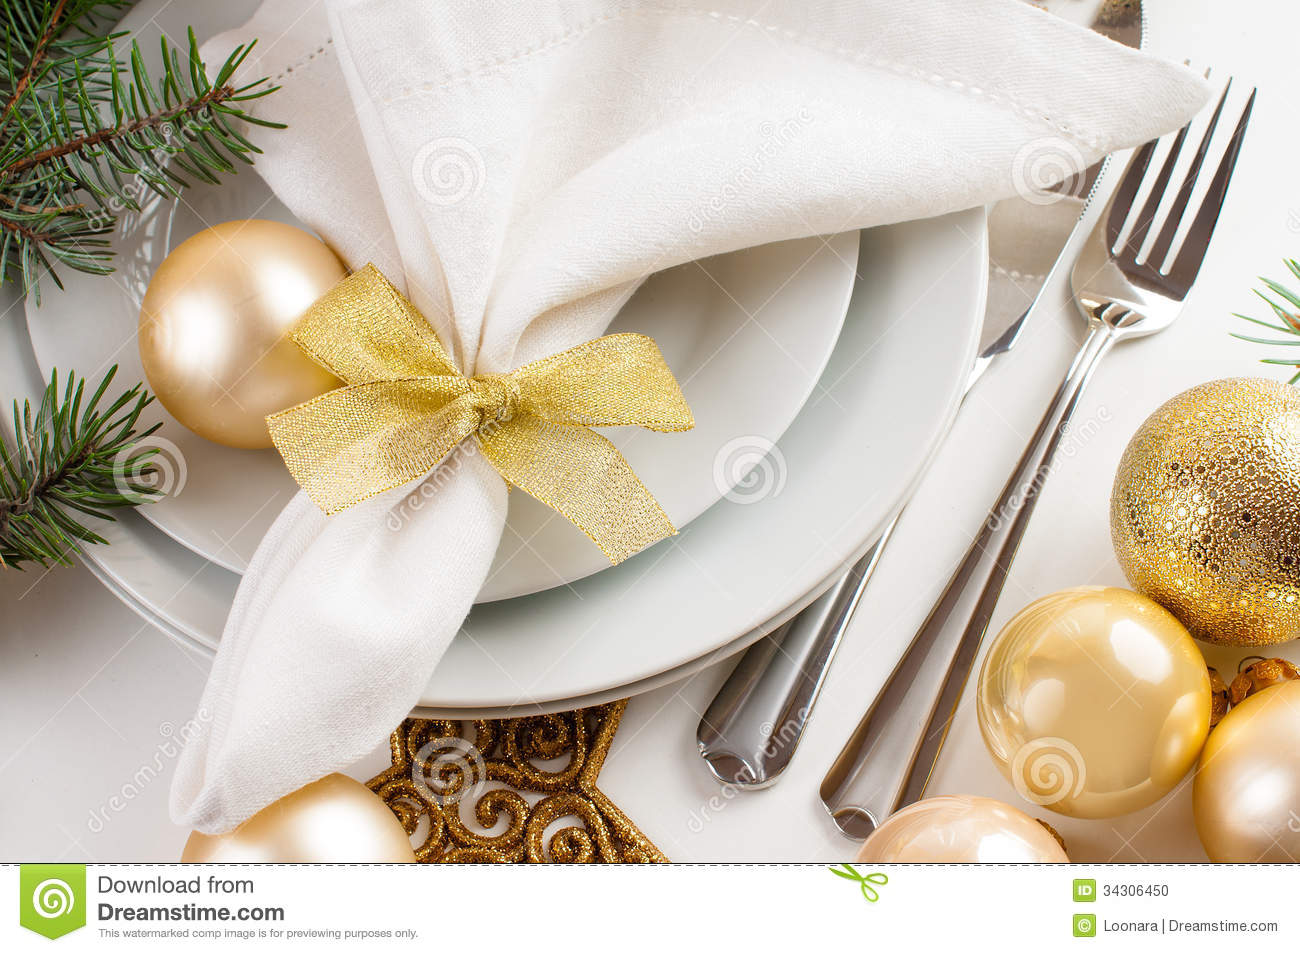 Christmas table decorations gold - Christmas Table Setting In Gold Tones